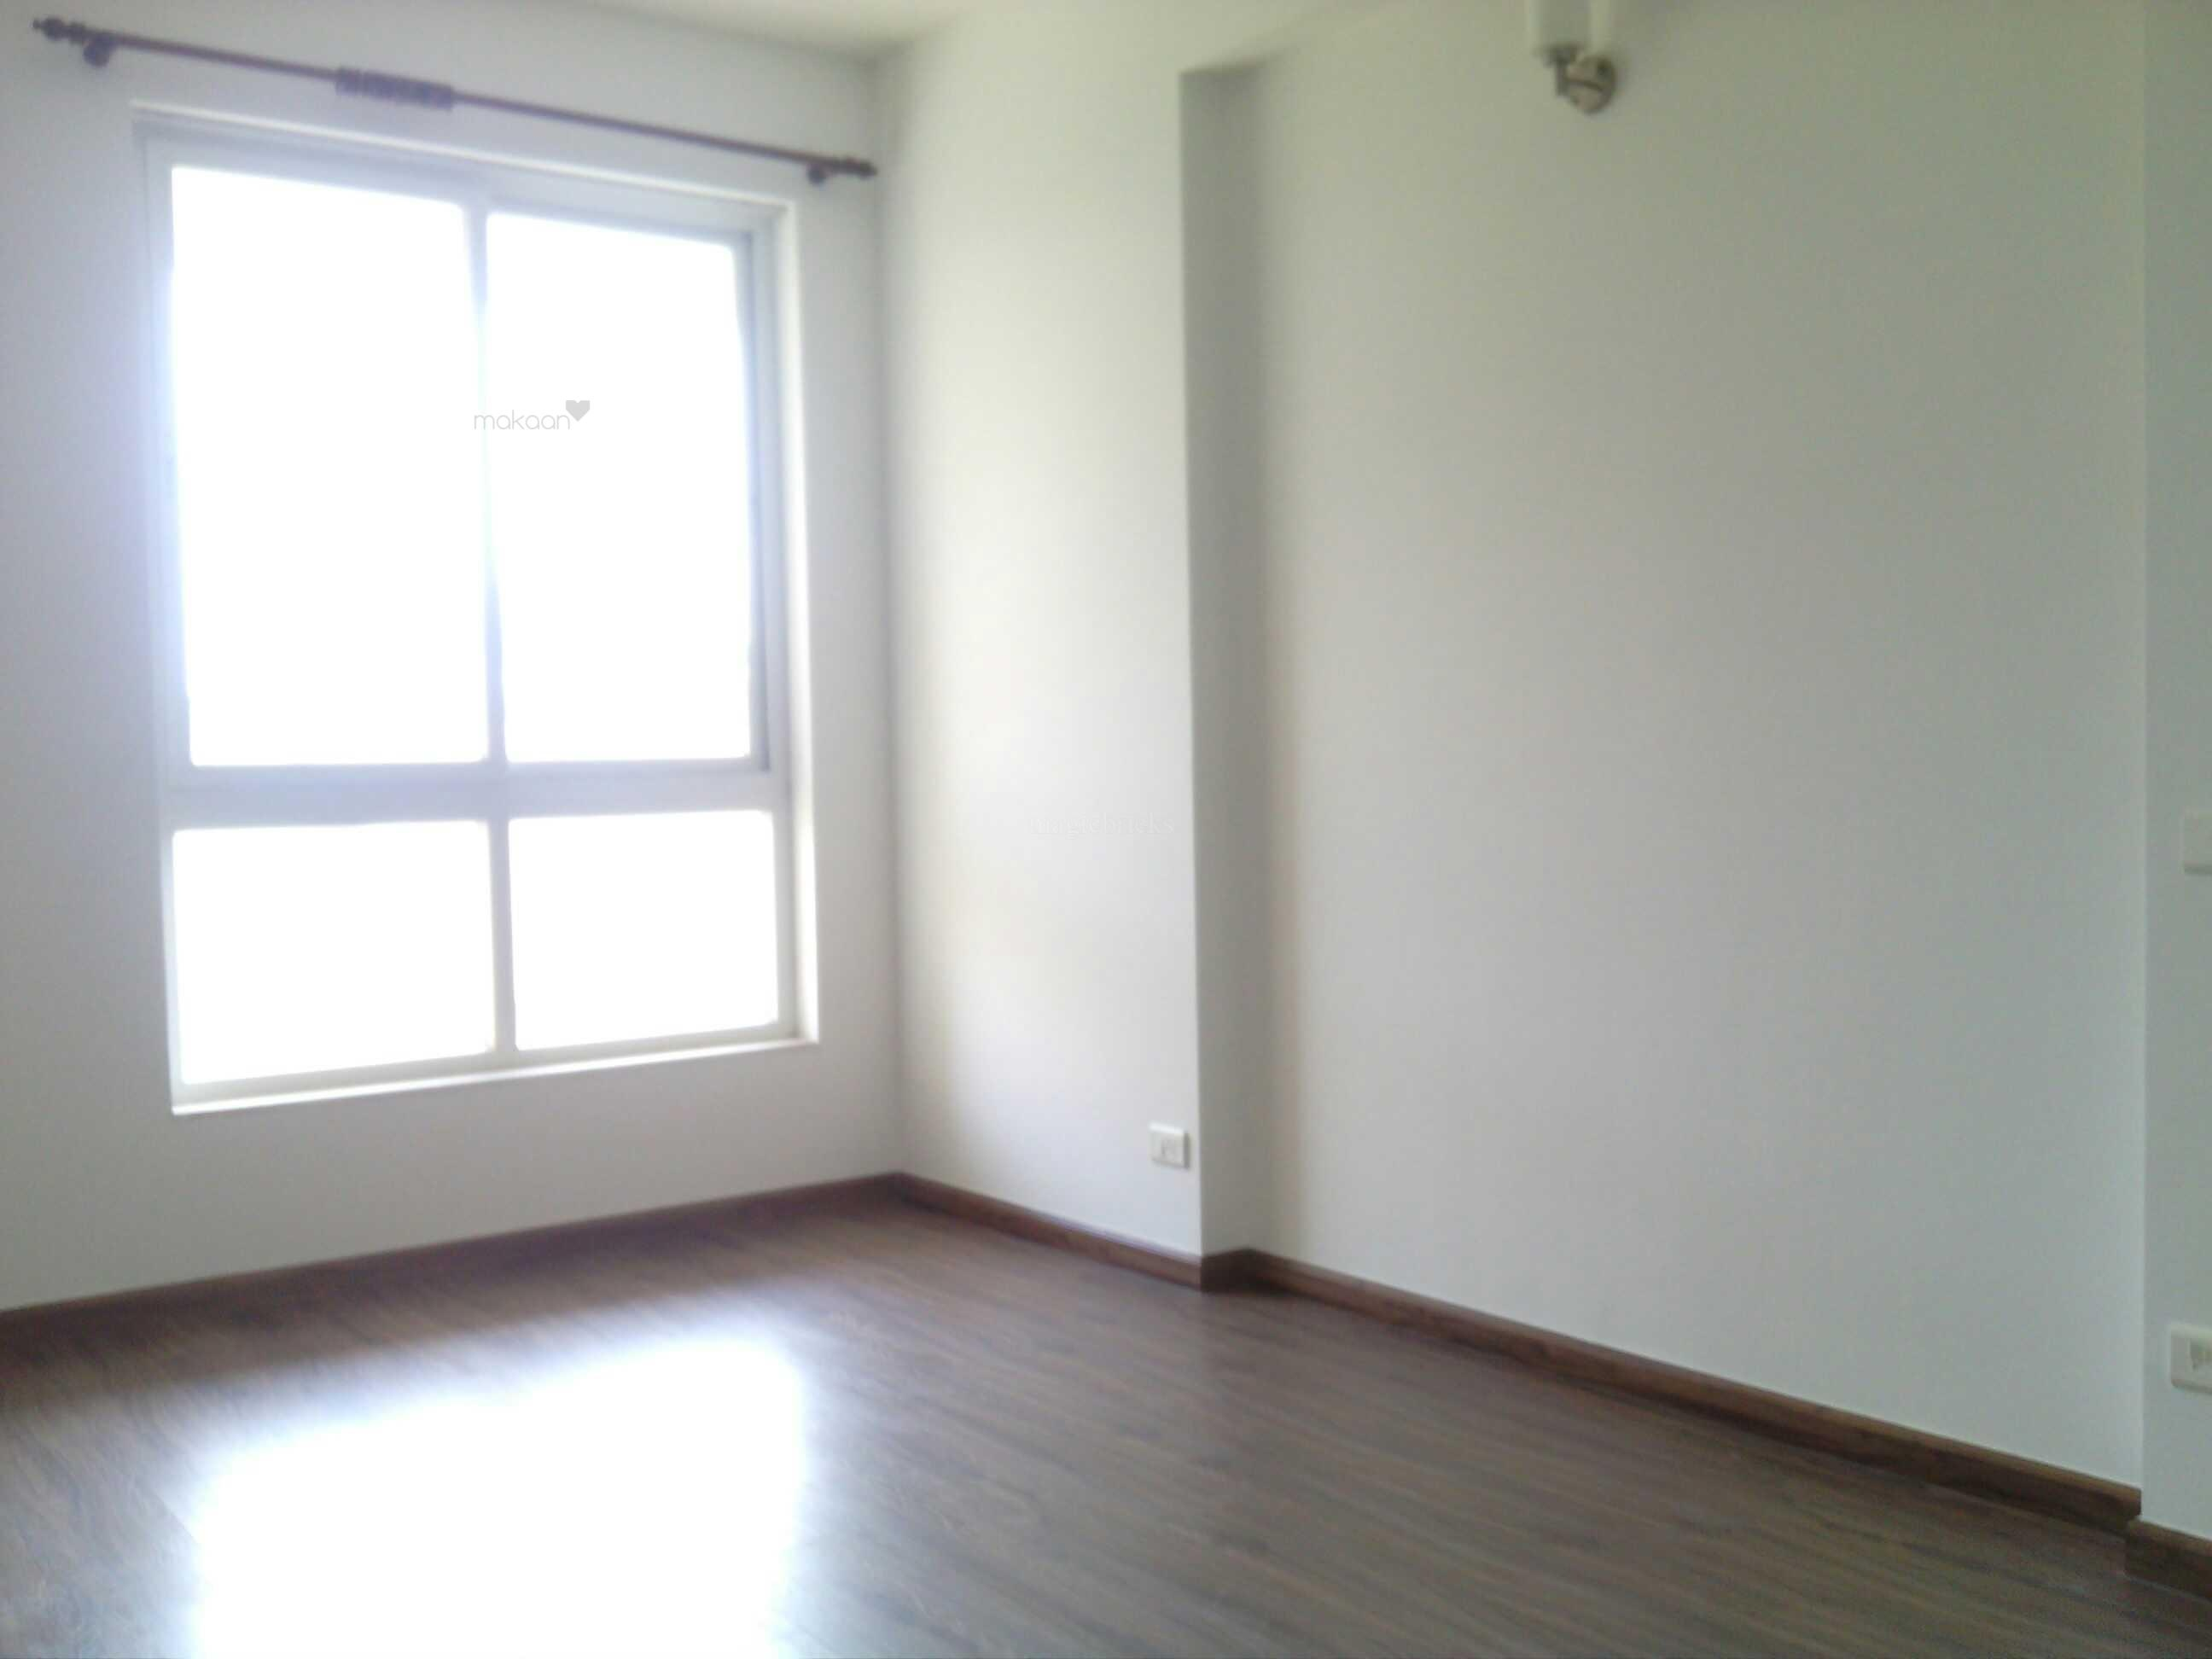 800 sq ft 1BHK 1BHK+1T (800 sq ft) Property By Shree Radha and Company In Plot Sector 12A, Sector 12 A